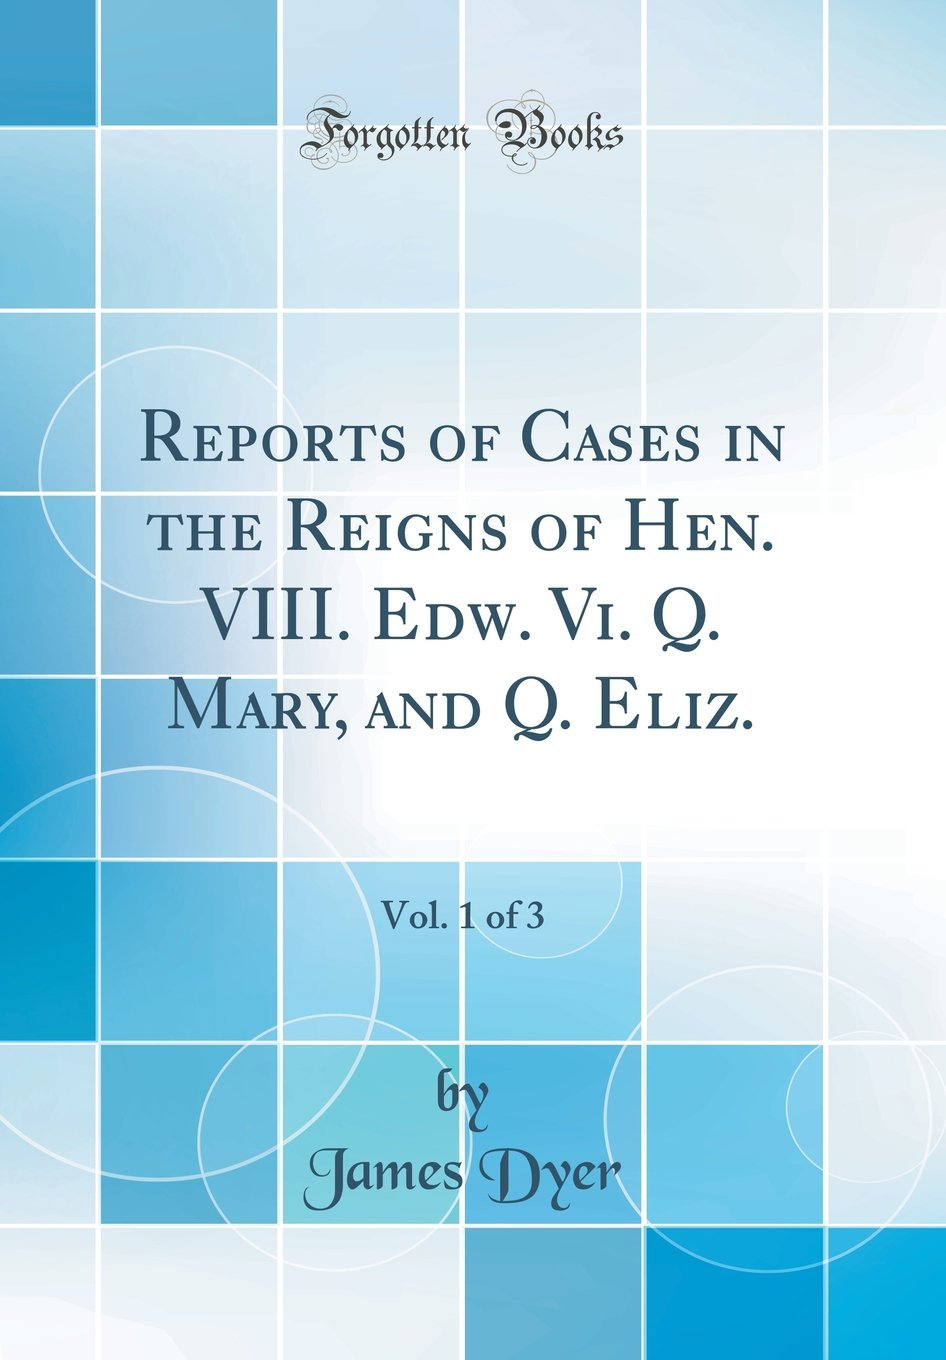 Read Online Reports of Cases in the Reigns of Hen. VIII. Edw. Vi. Q. Mary, and Q. Eliz., Vol. 1 of 3 (Classic Reprint) PDF